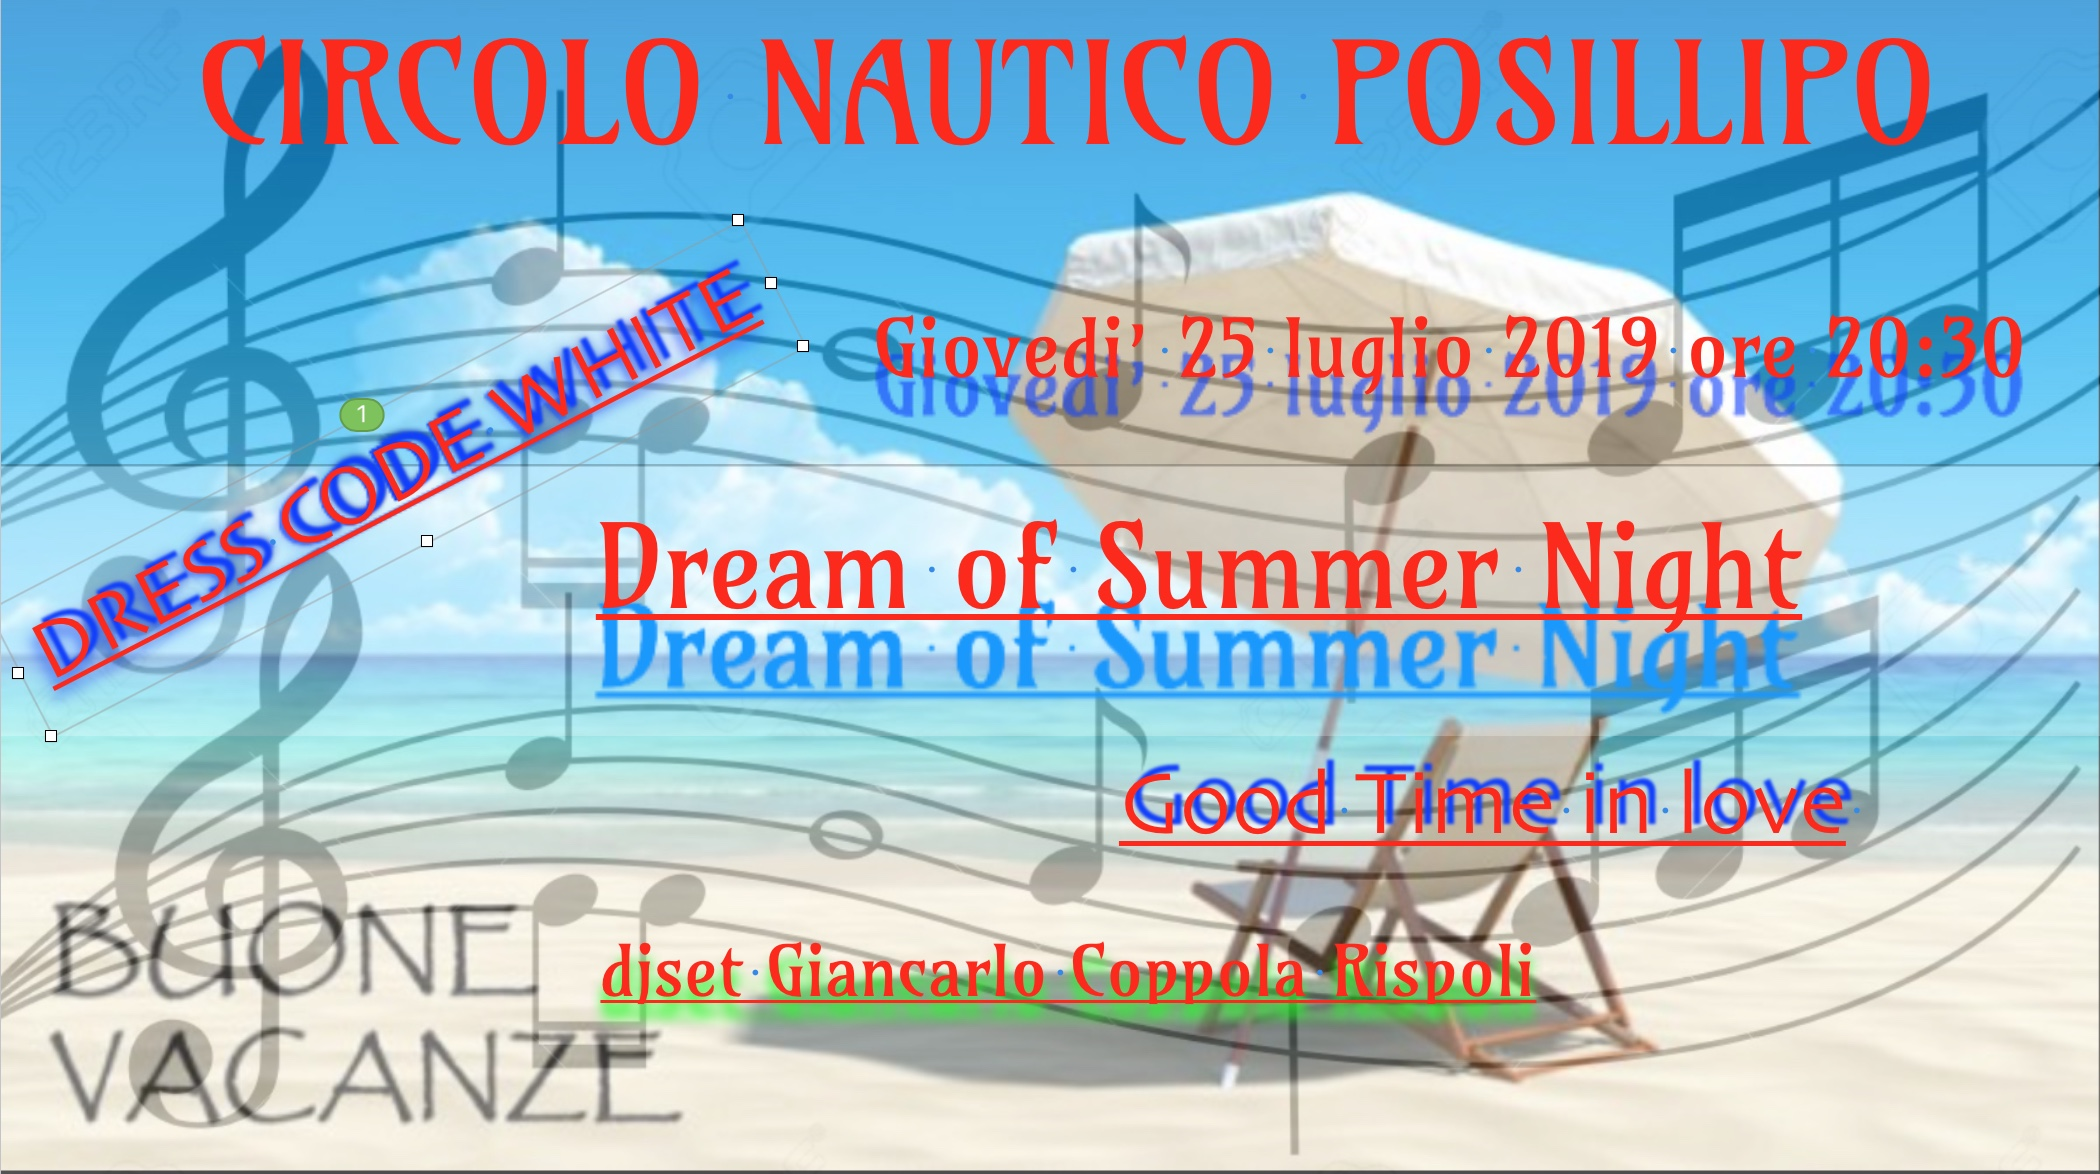 Locandina del 25 luglio 2019 Dream of Summer Night